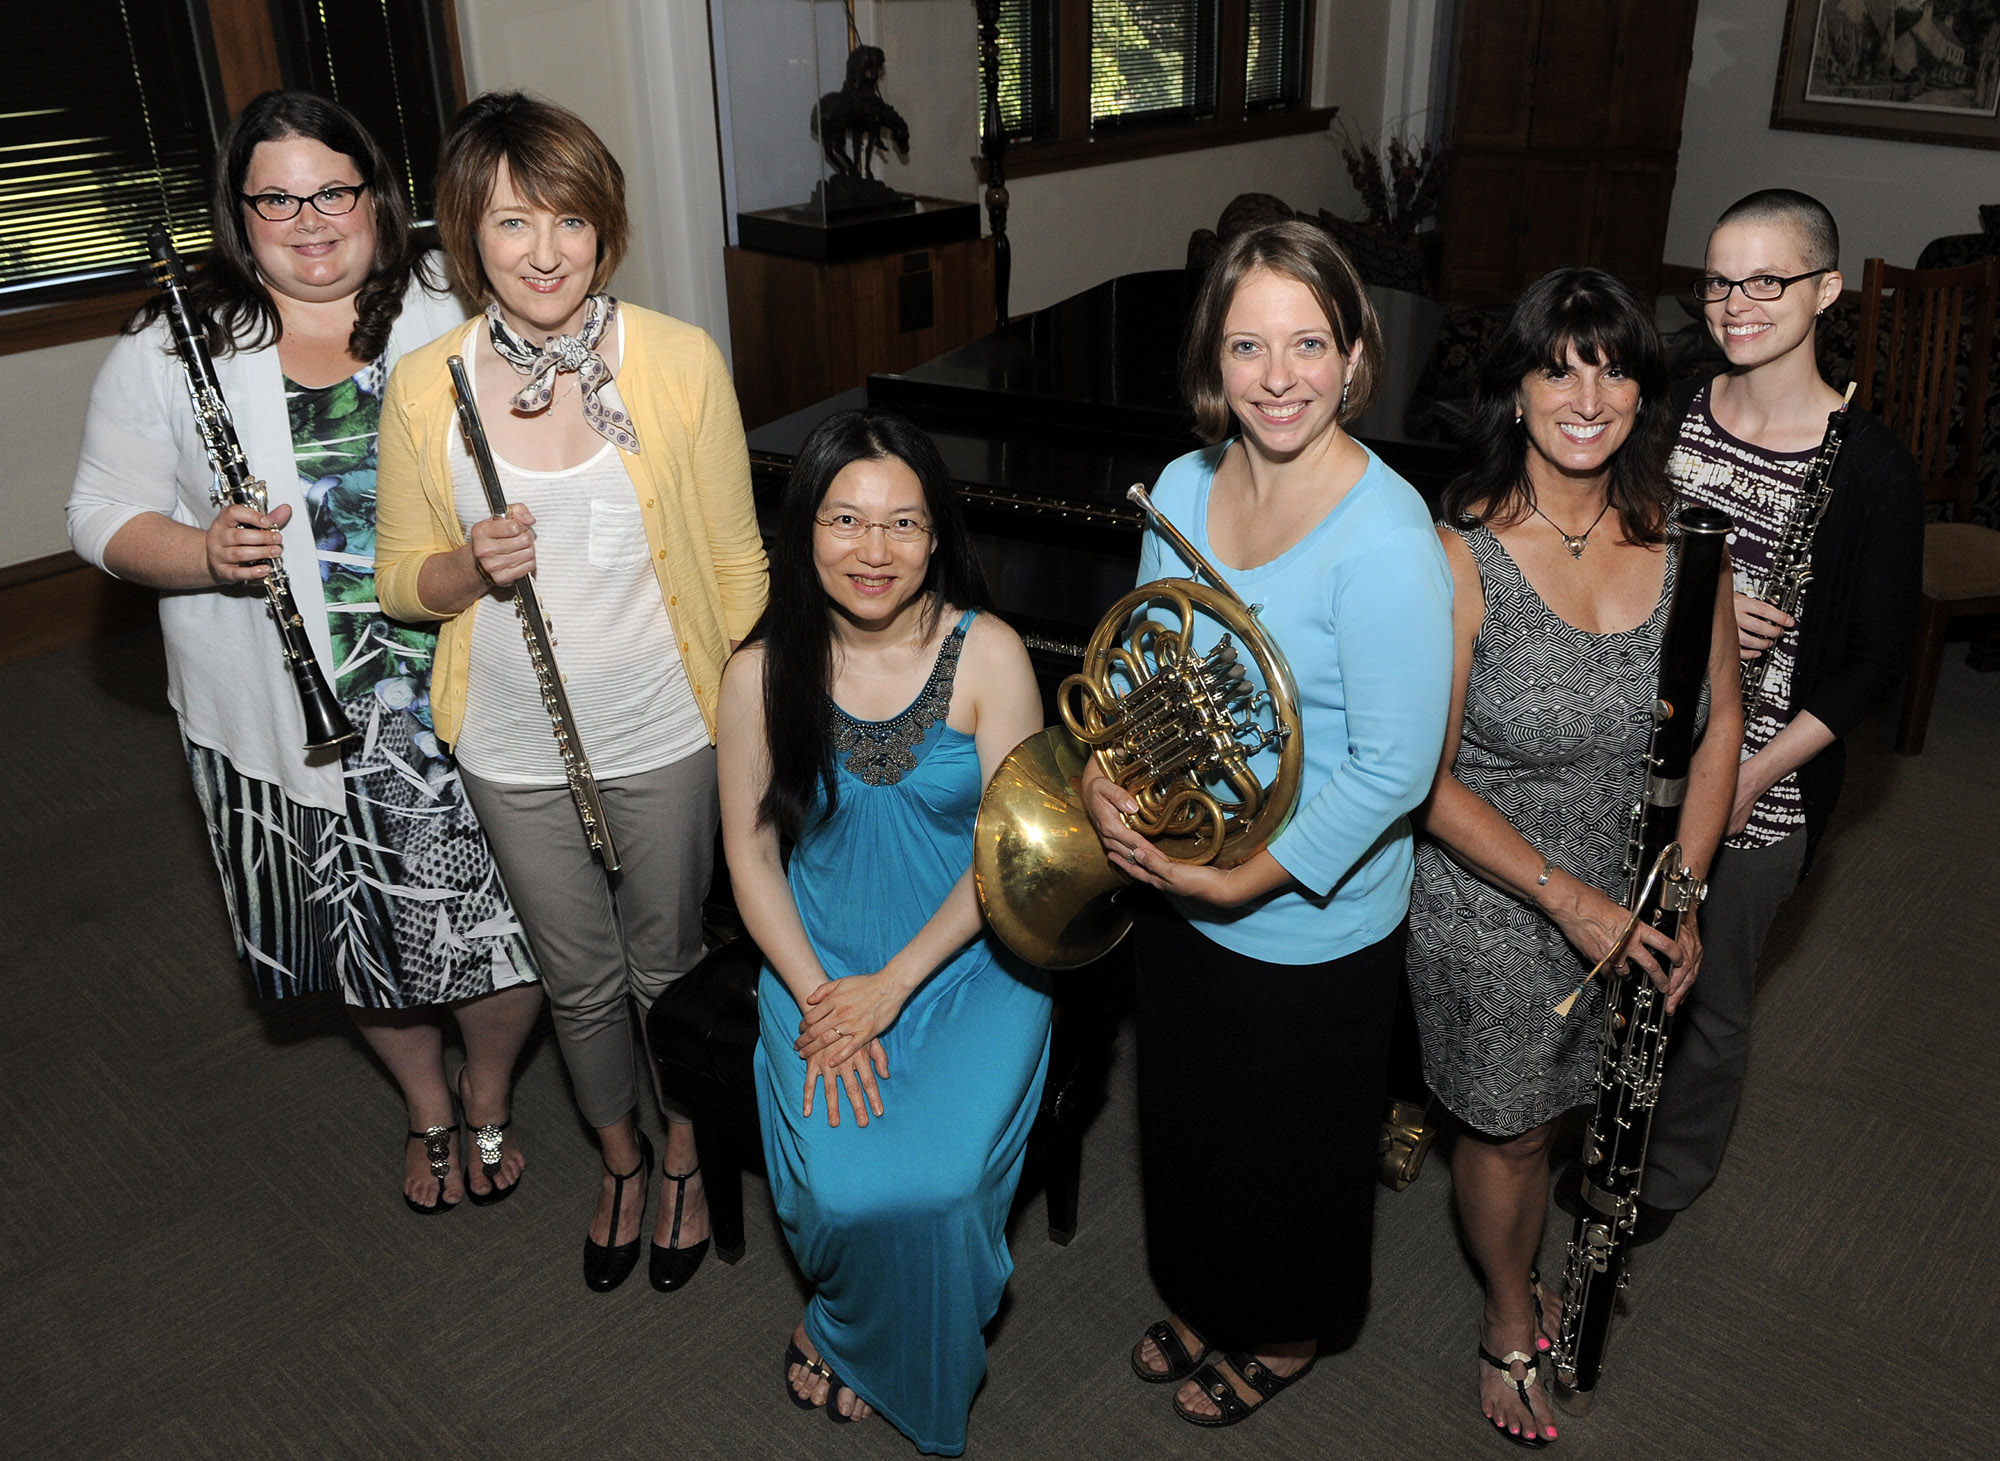 UCO faculty members (from left) clarinetist Dawn Marie Lindblade, D.M.A., flutist Emily Butterfield, D.M.A., pianist Chindarat Charoenwongse-Shaw, D.M.A., horn player Peggy Moran, D.M., bassoonist Lori Wooden, D.M.A., and oboist Kadee Bramlett will kick off the 2014-215 season of the Faculty Artist Concert Series with a performance at 7:30 p.m., Sept. 2.